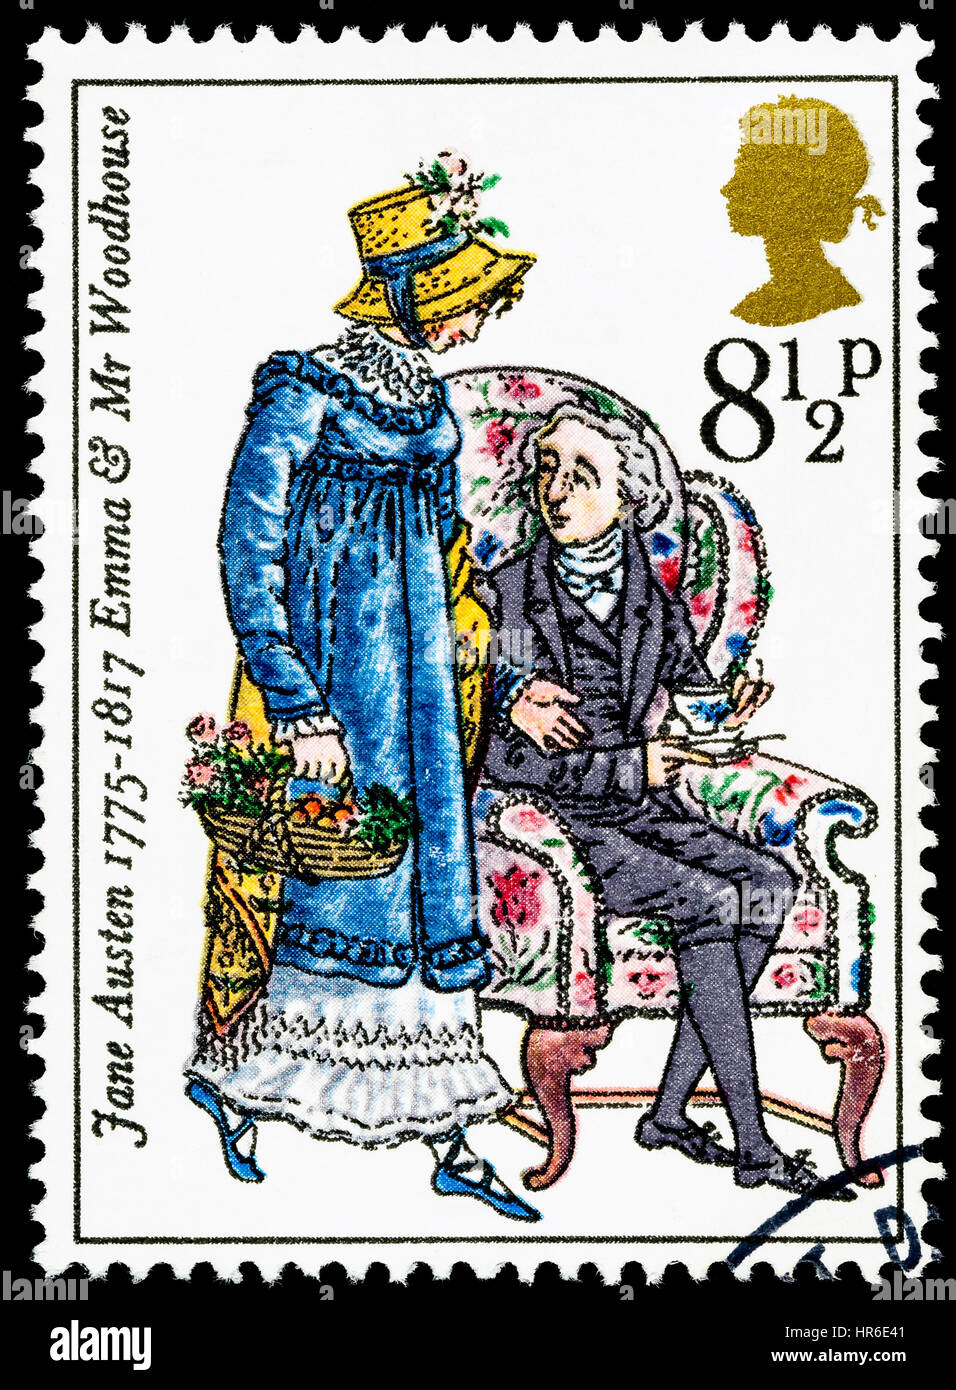 UNITED KINGDOM - CIRCA 1975: used postage stamp printed in Britain commemorating the Bicentenary of the Writer Jane - Stock Image